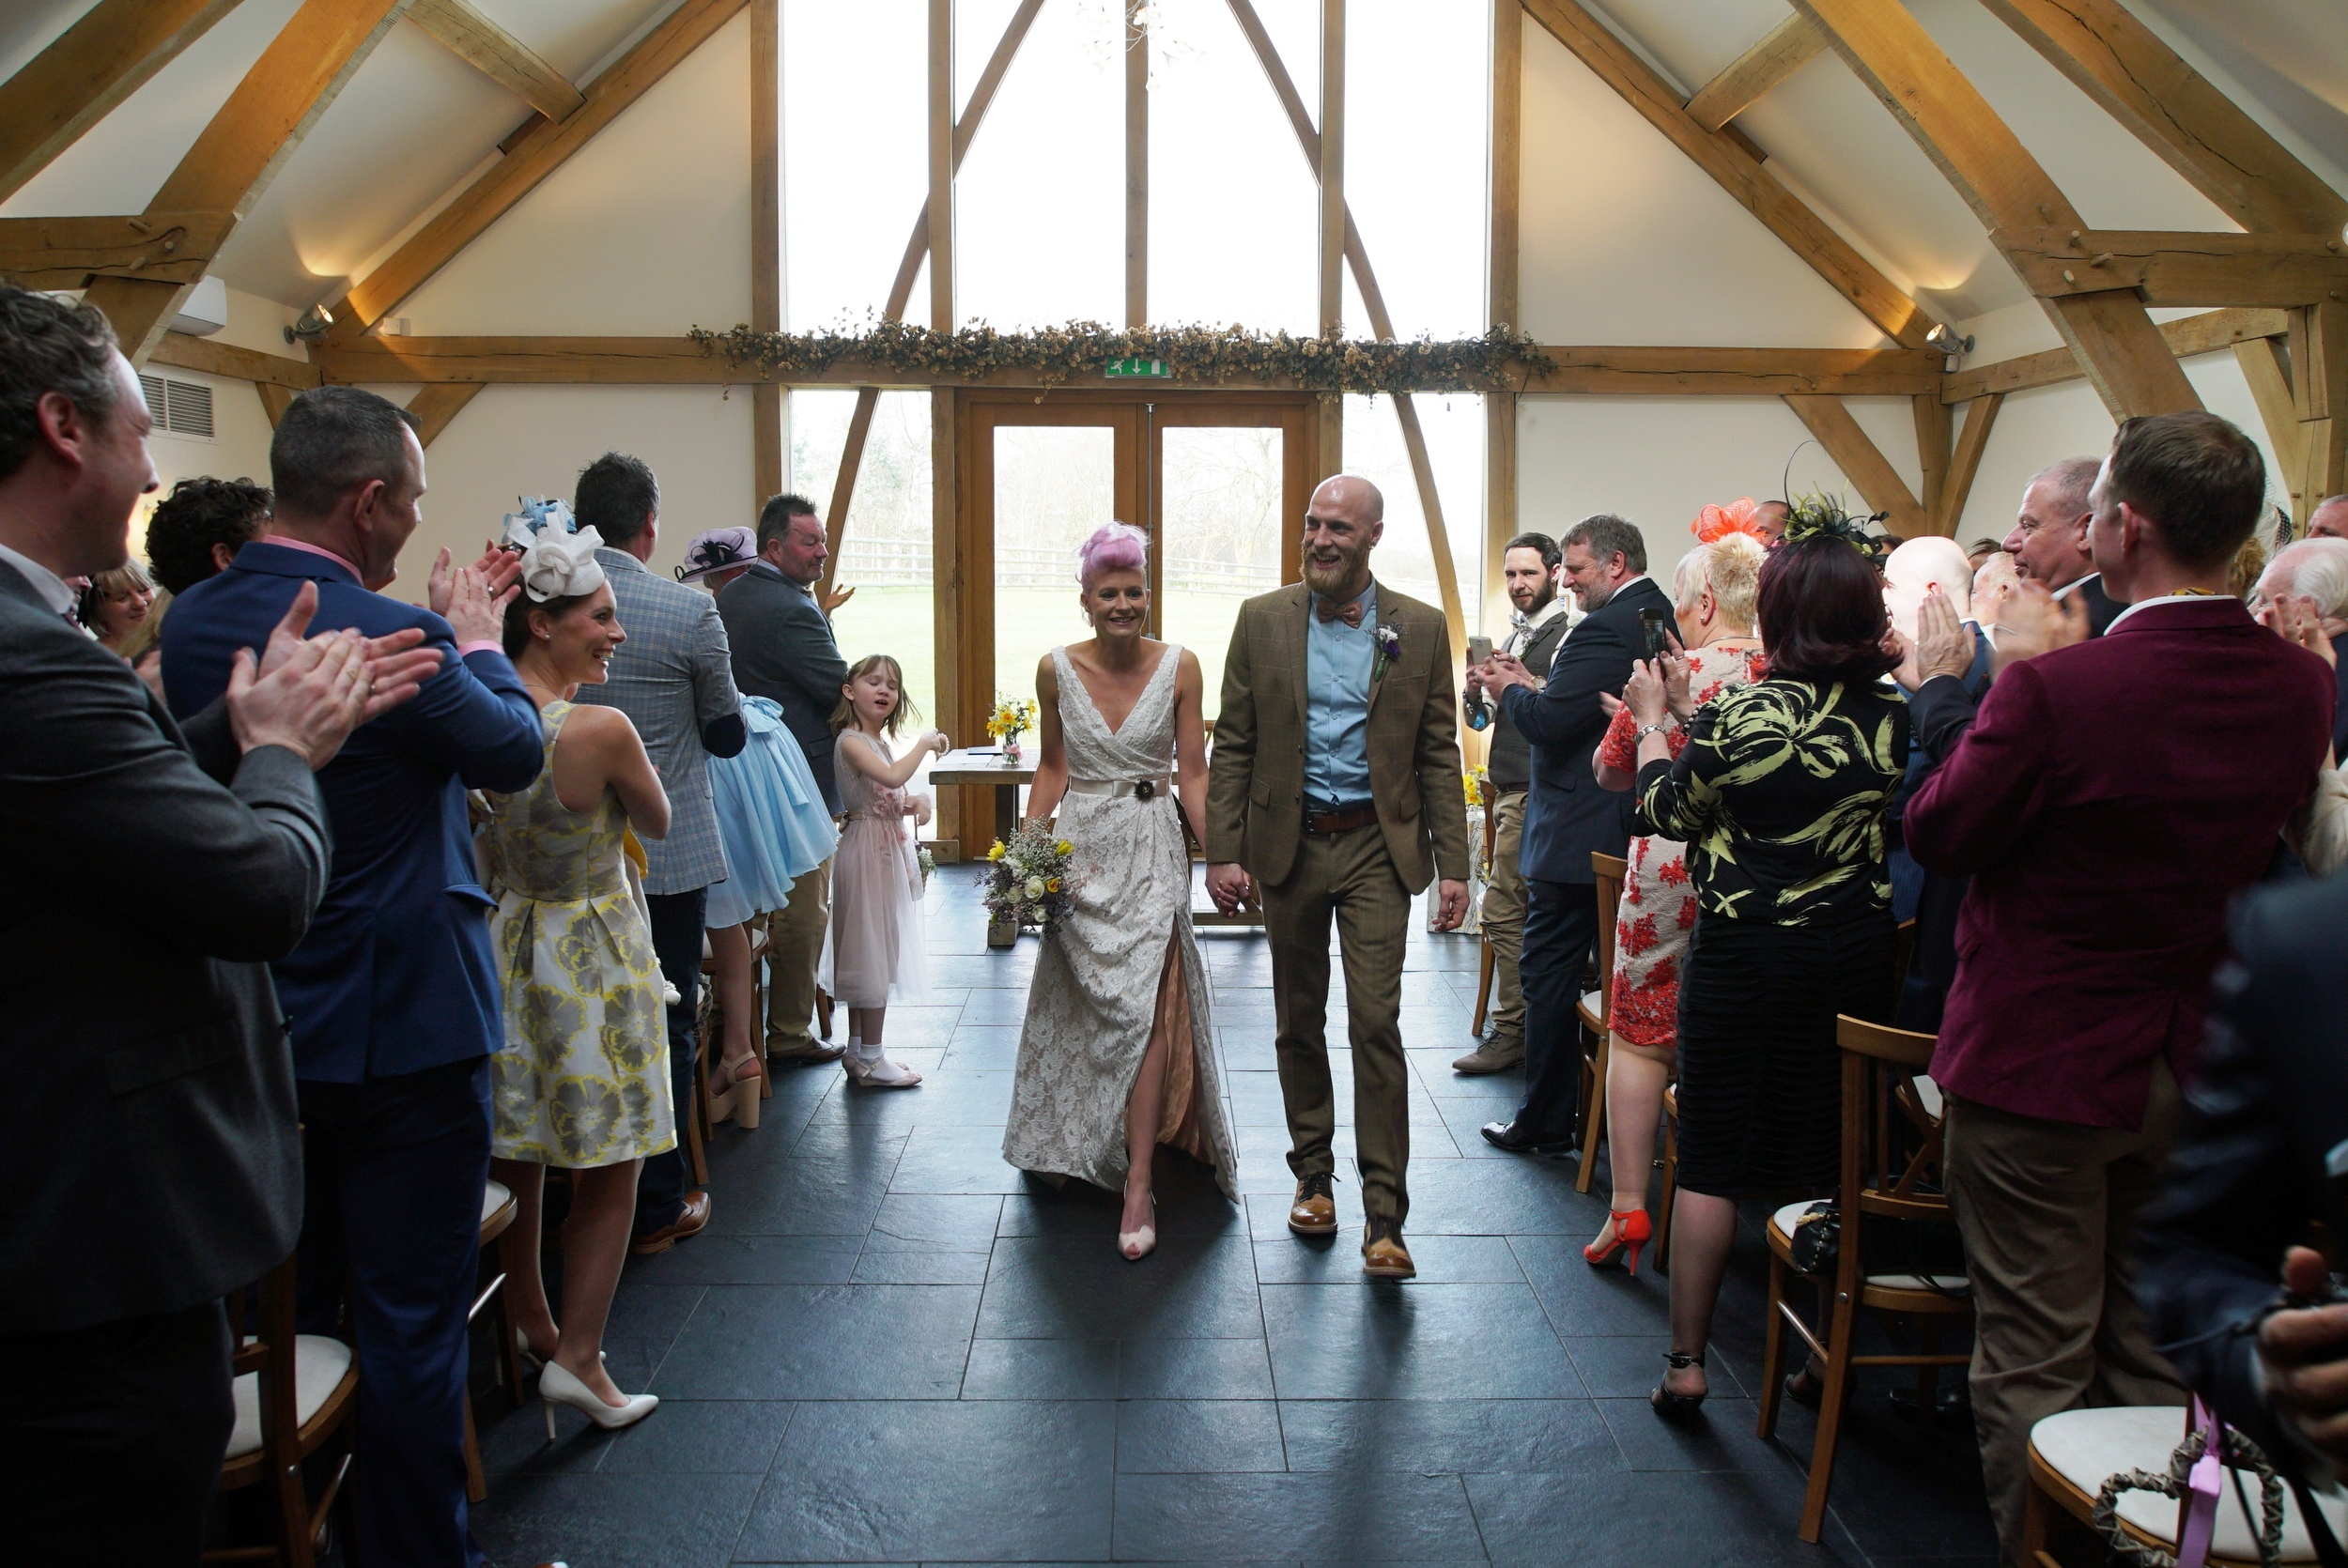 Sam & Toby - Wedding Ceremony Mythe Barn | www.myperfectceremony.co.uk